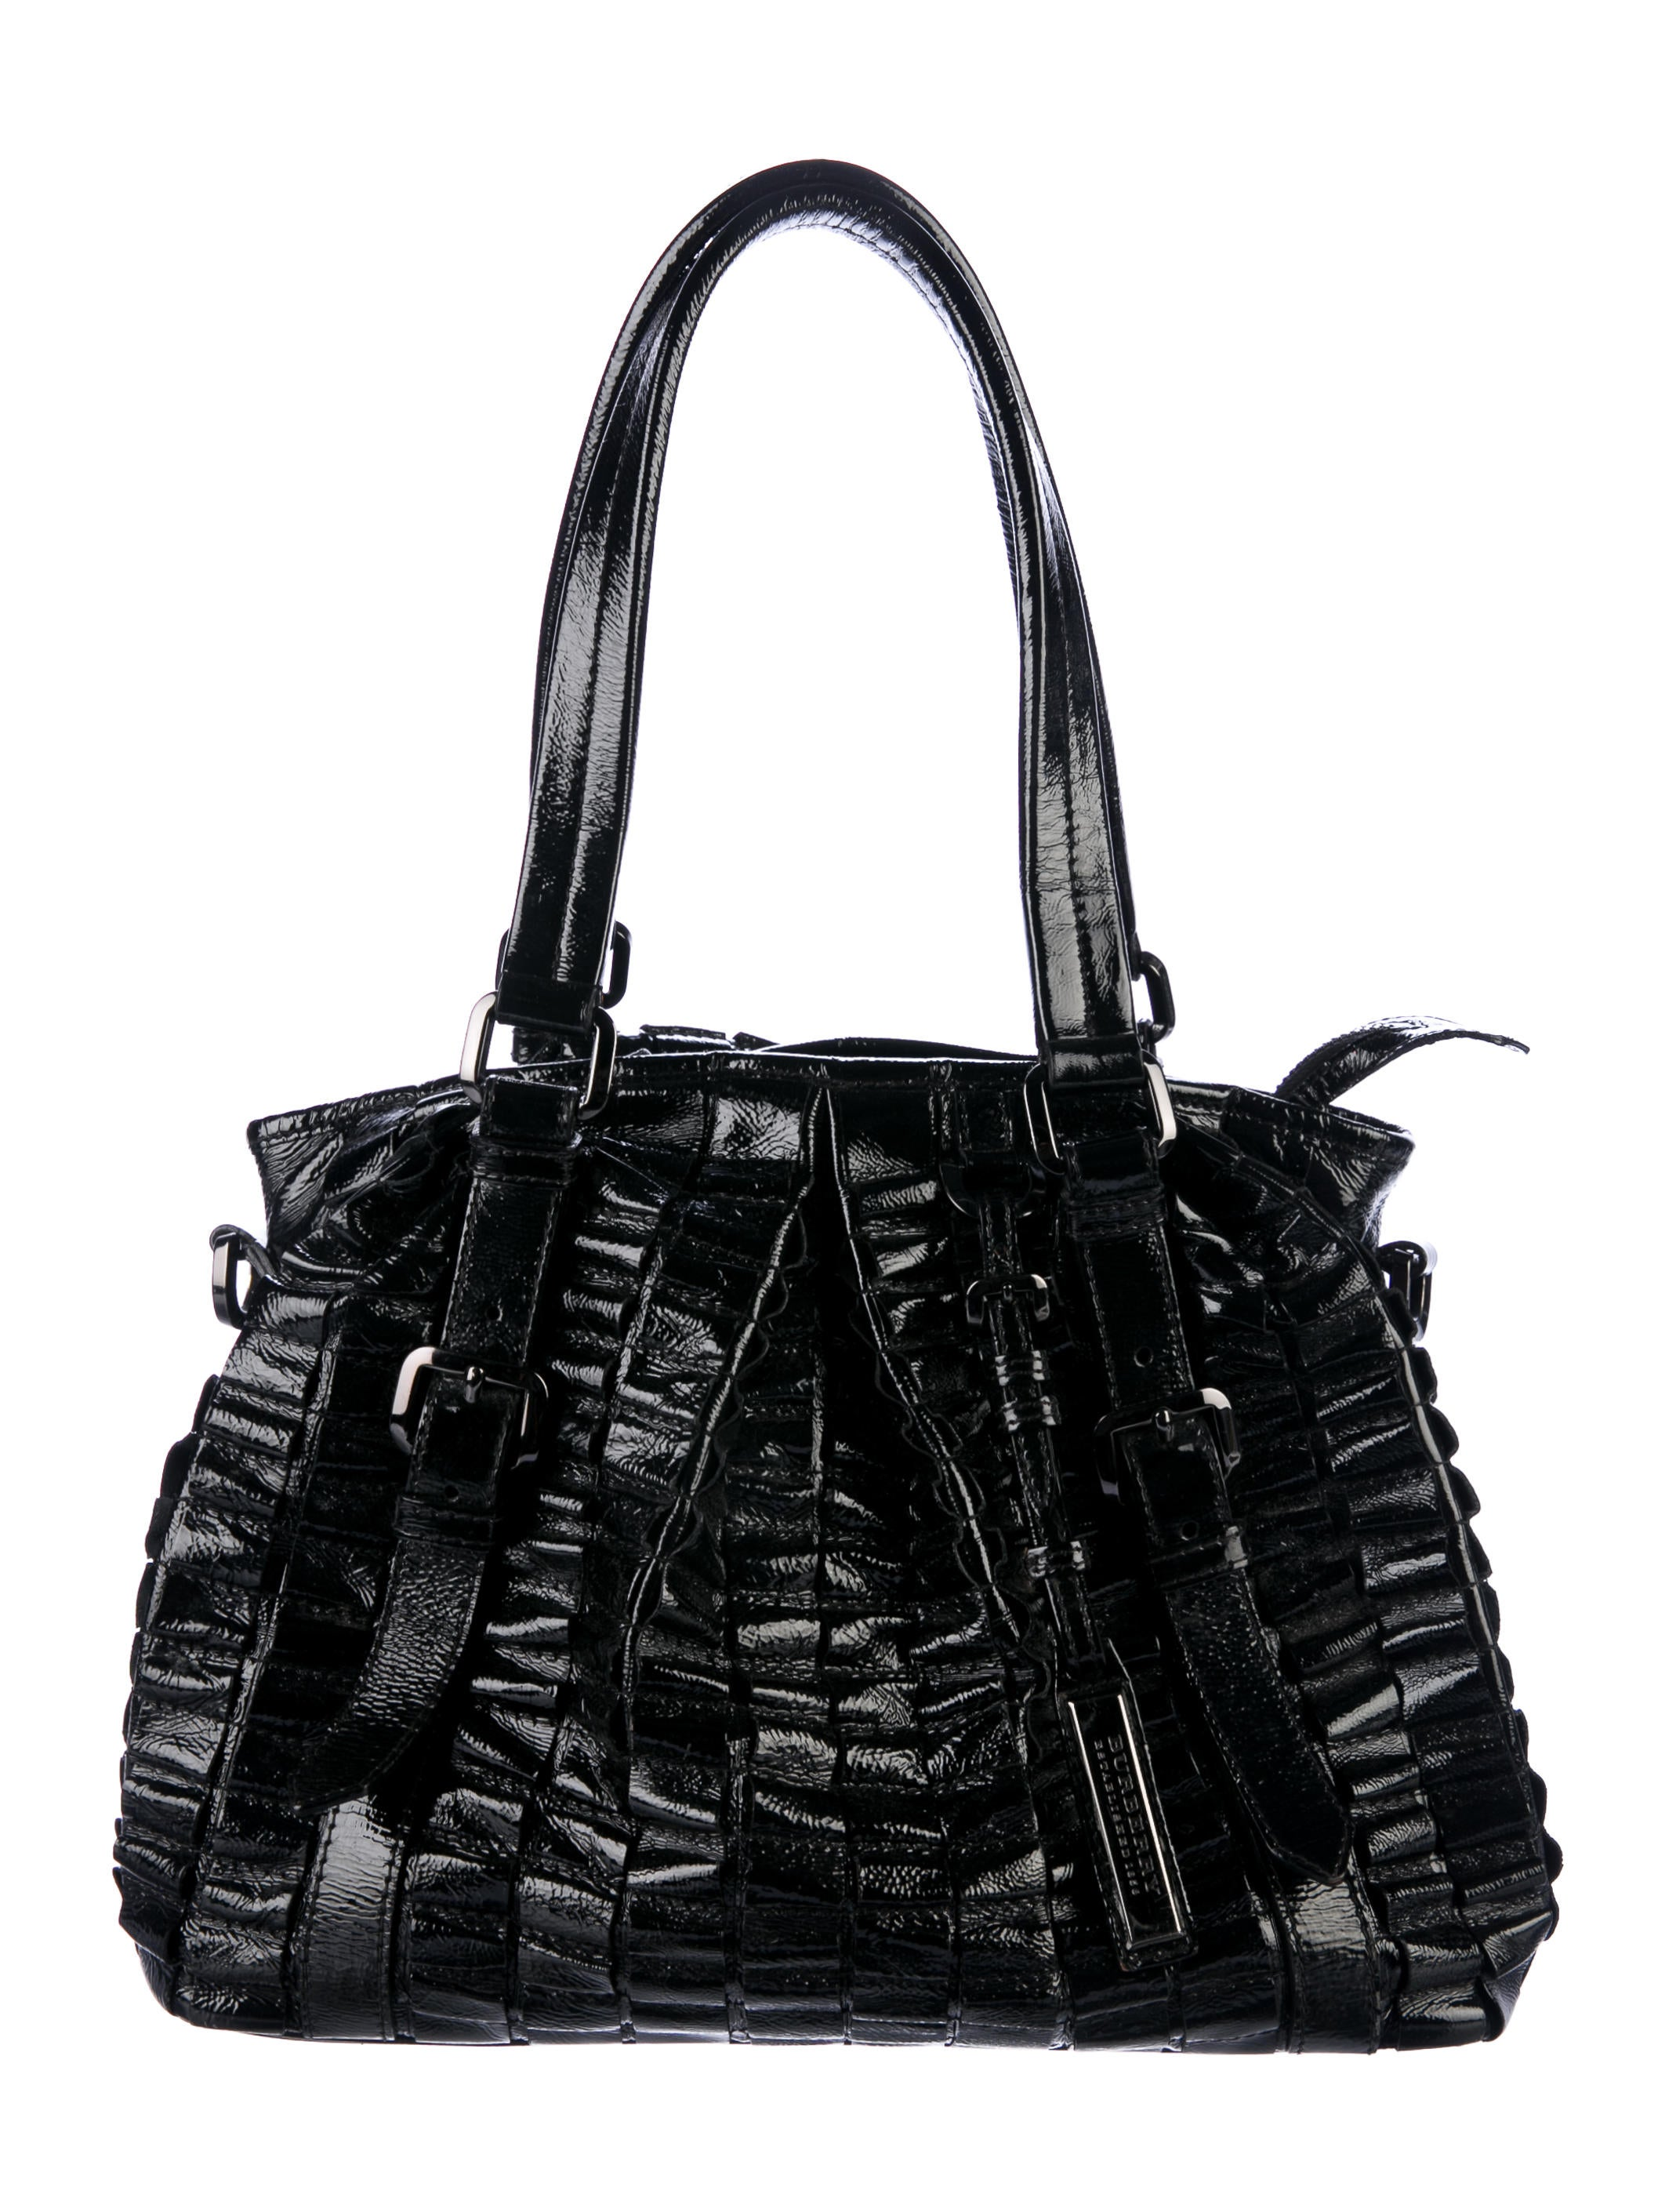 3125d50080 Burberry Lowry Ruffled Patent Leather Tote - Handbags - BUR82910   The  RealReal